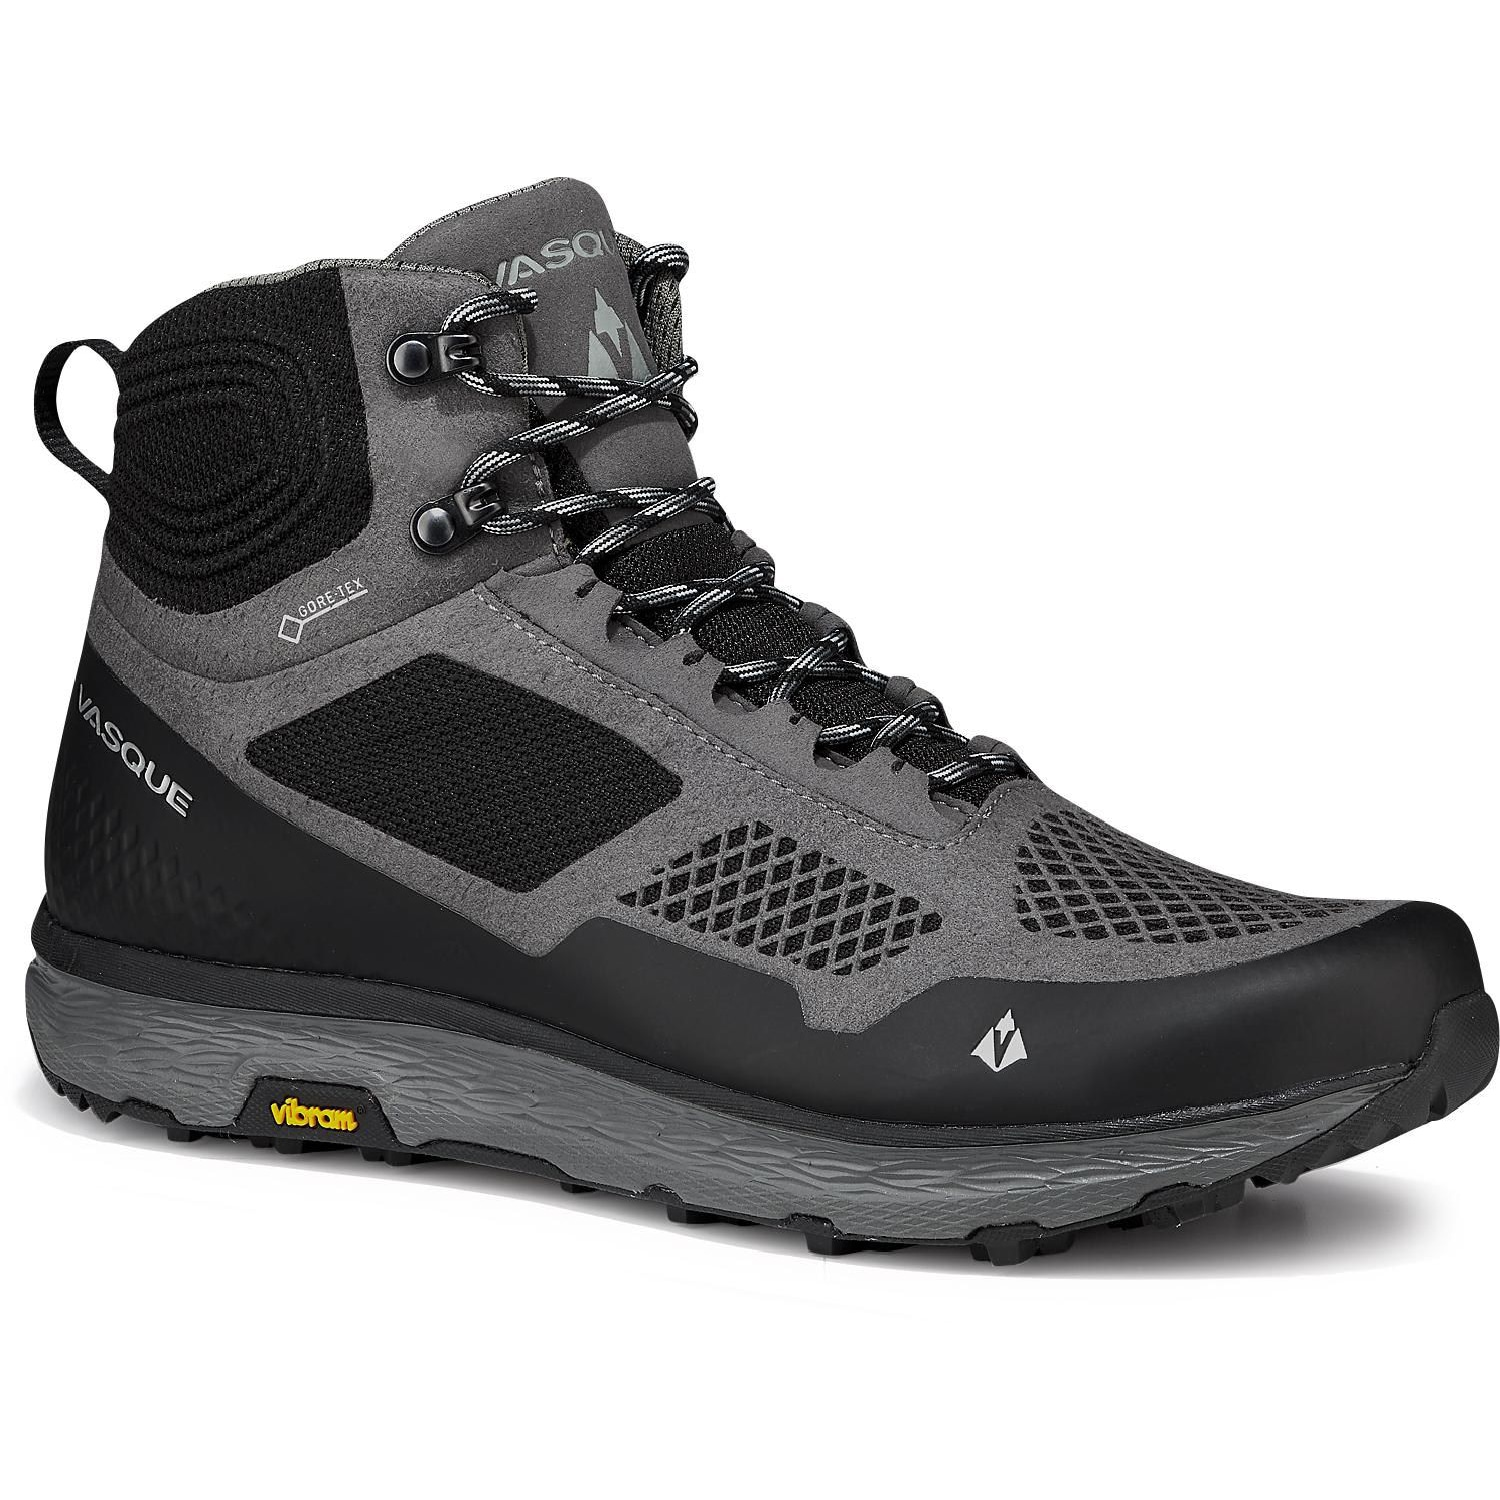 Breeze LT GTX Boot - Men's